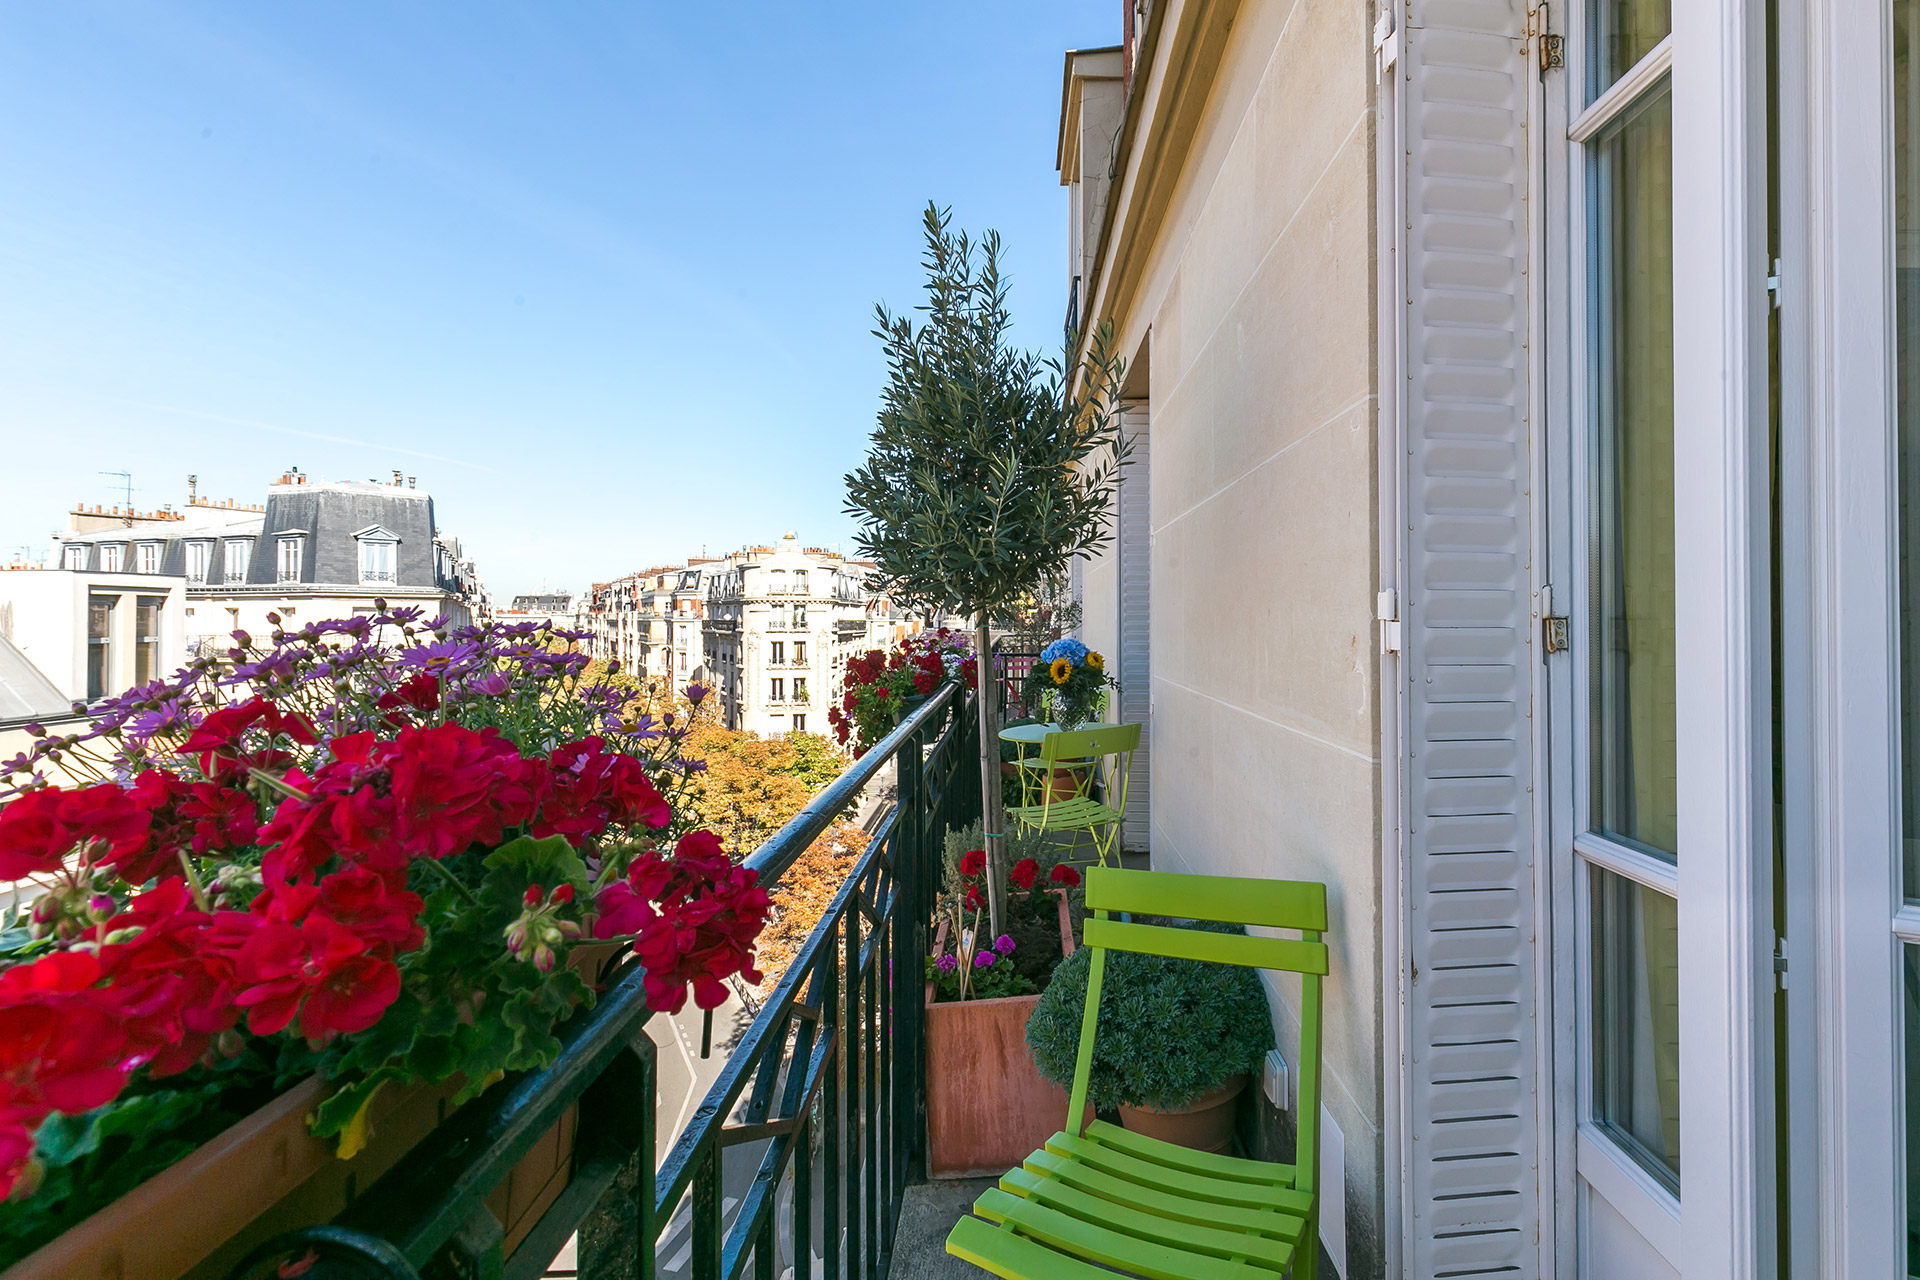 Check out this gorgeous view over the rooftops in the Vivarais vacation rental by Paris Perfect